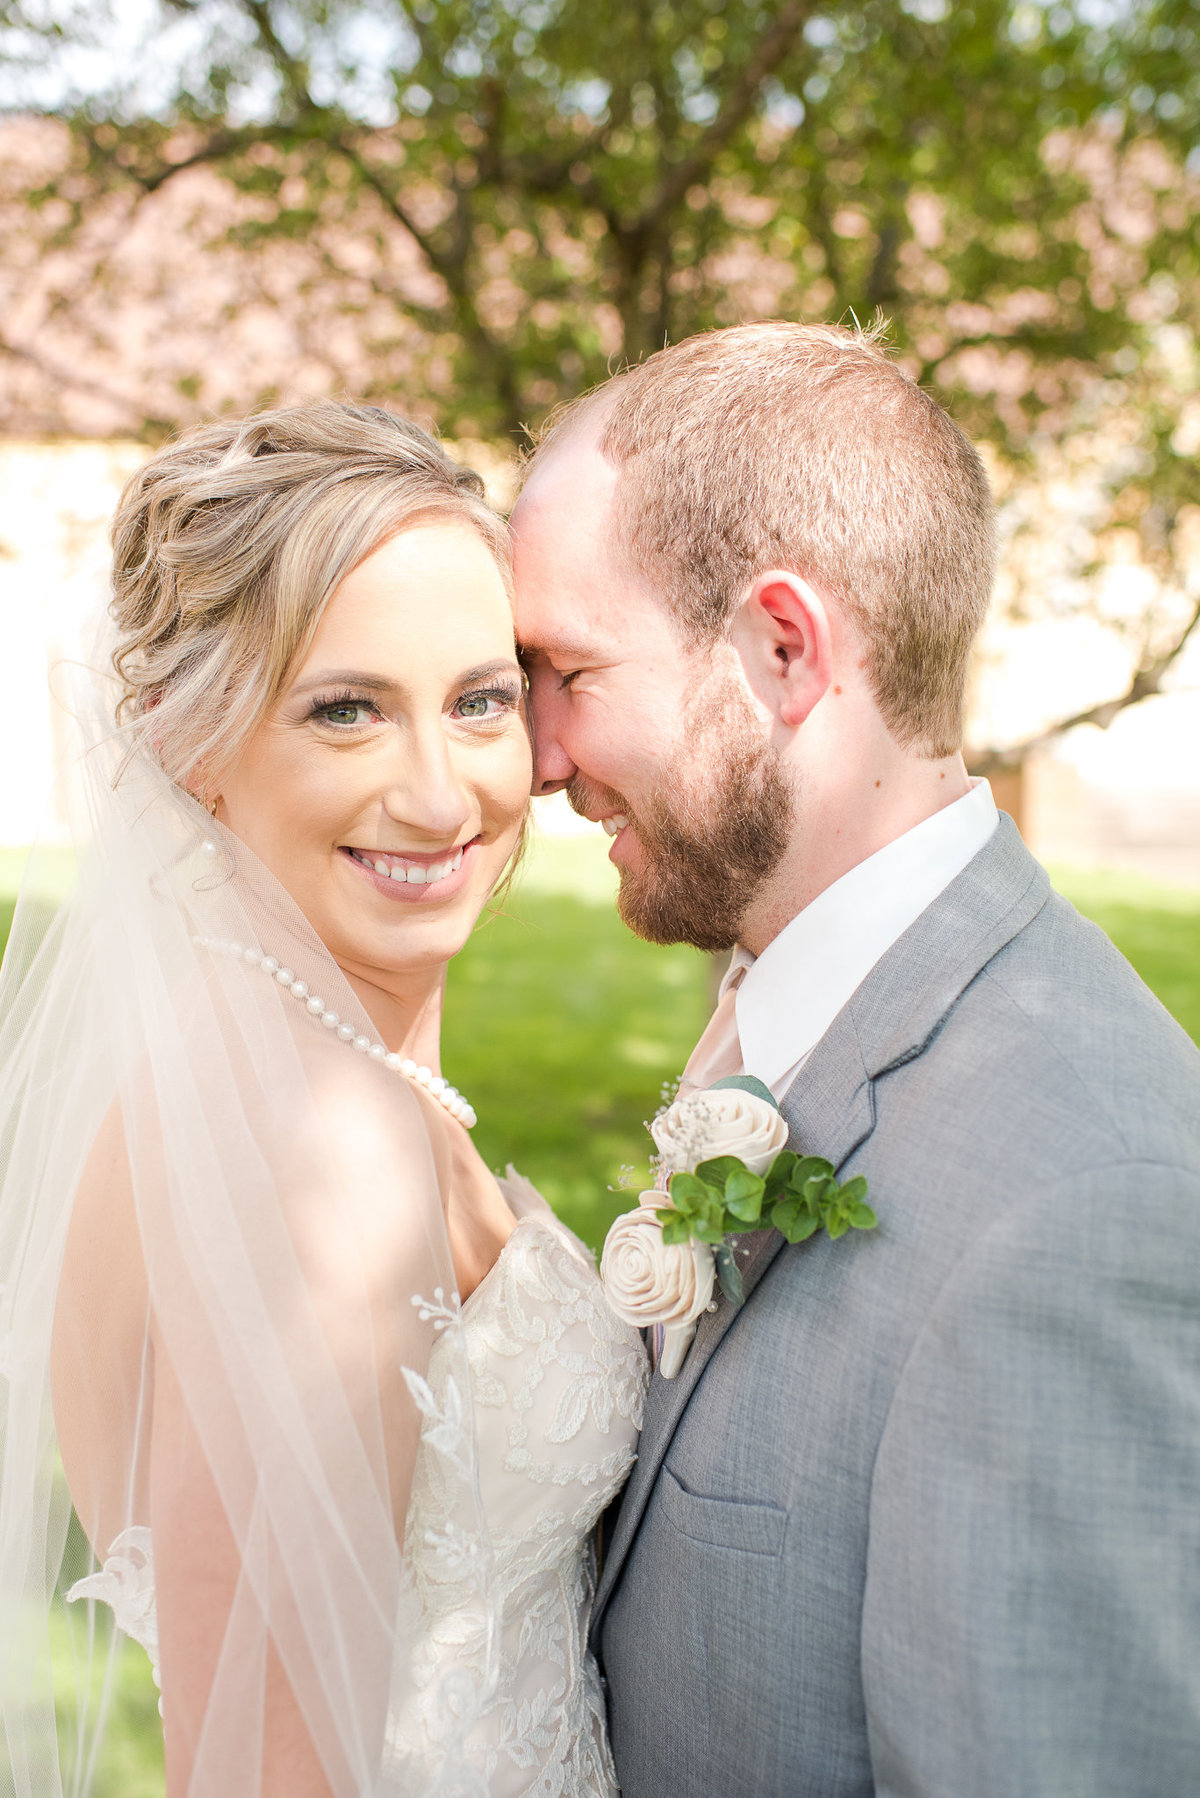 danielle kristine photography- Shane + Nickis' wedding-18